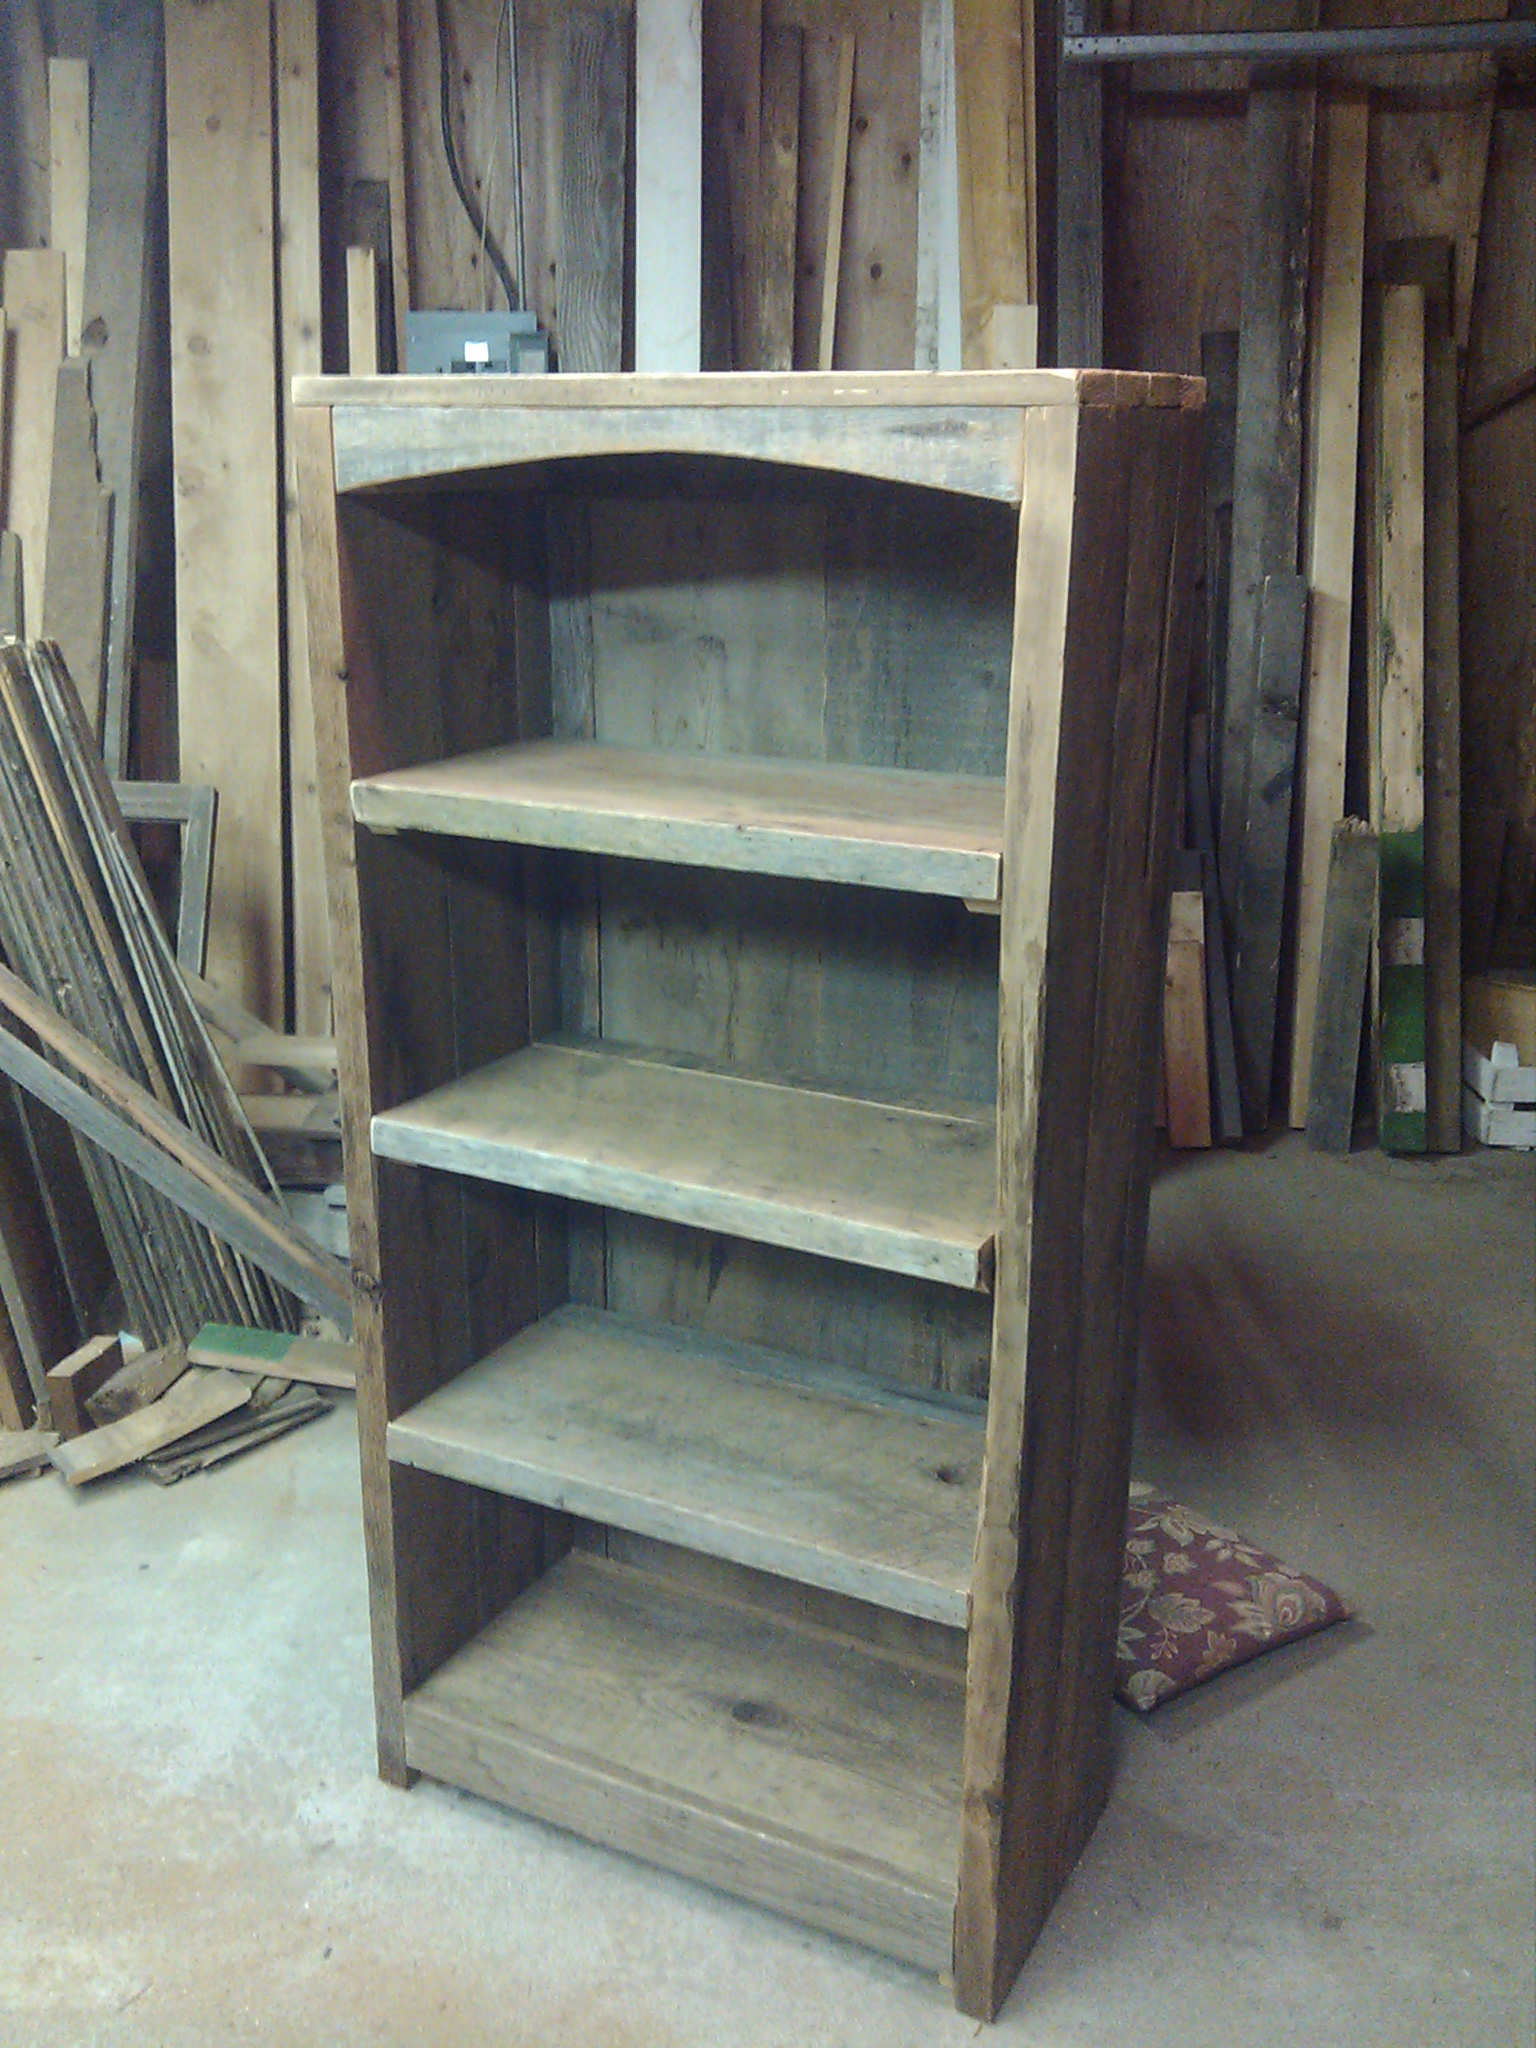 2012 10 21 kenner bookcase on rustic barn home plans